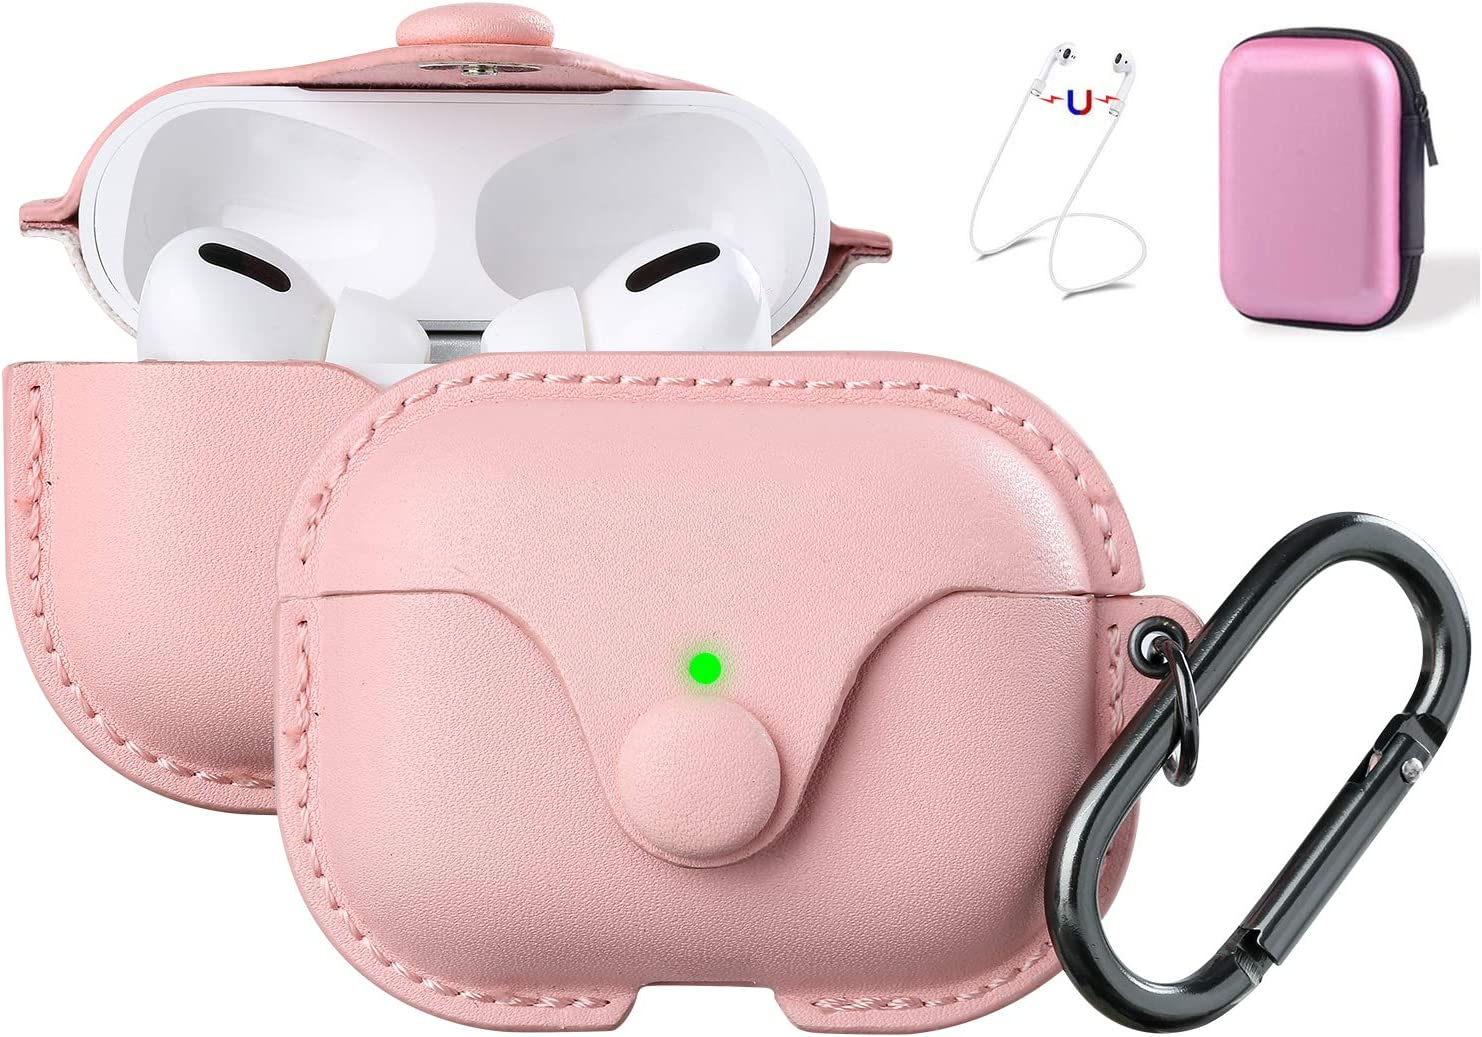 Maxjoy Compatible Airpods Pro Case Cover, Airpods 3 Leather Case Protective Cover with Keychain Airpods Strap Compatible with Apple Airpods Pro Charging Case 3rd Gen 2019 (Front LED Visible), Pink